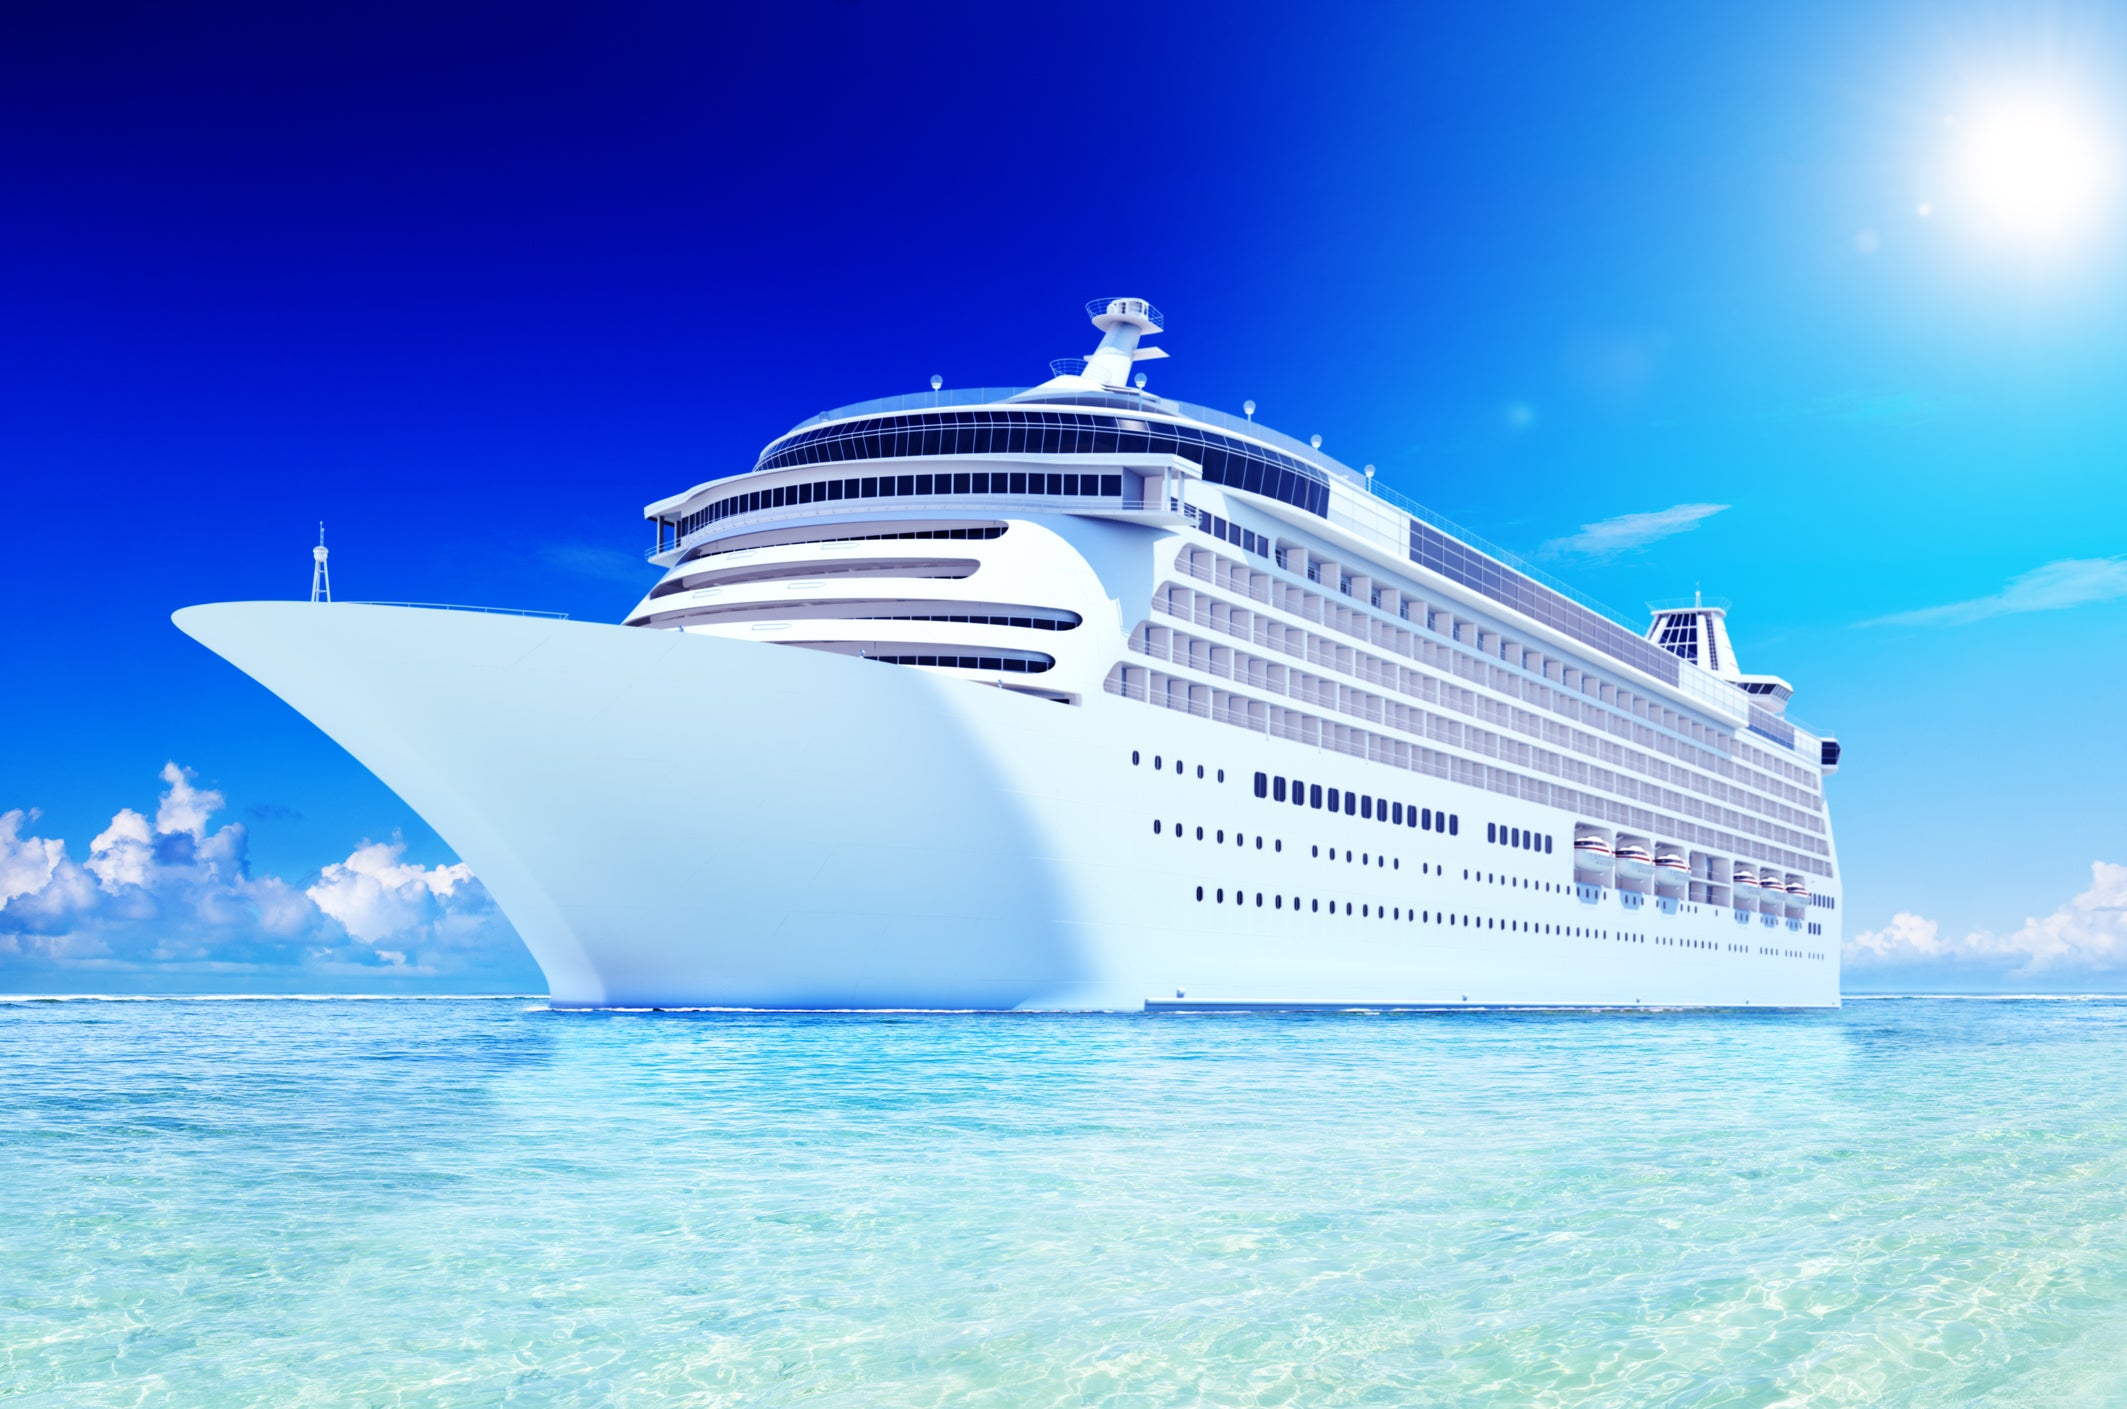 Why Carnival Corporation, Royal Caribbean, and Norwegian Cruise Line Holdings Stocks All Bounced This Morning